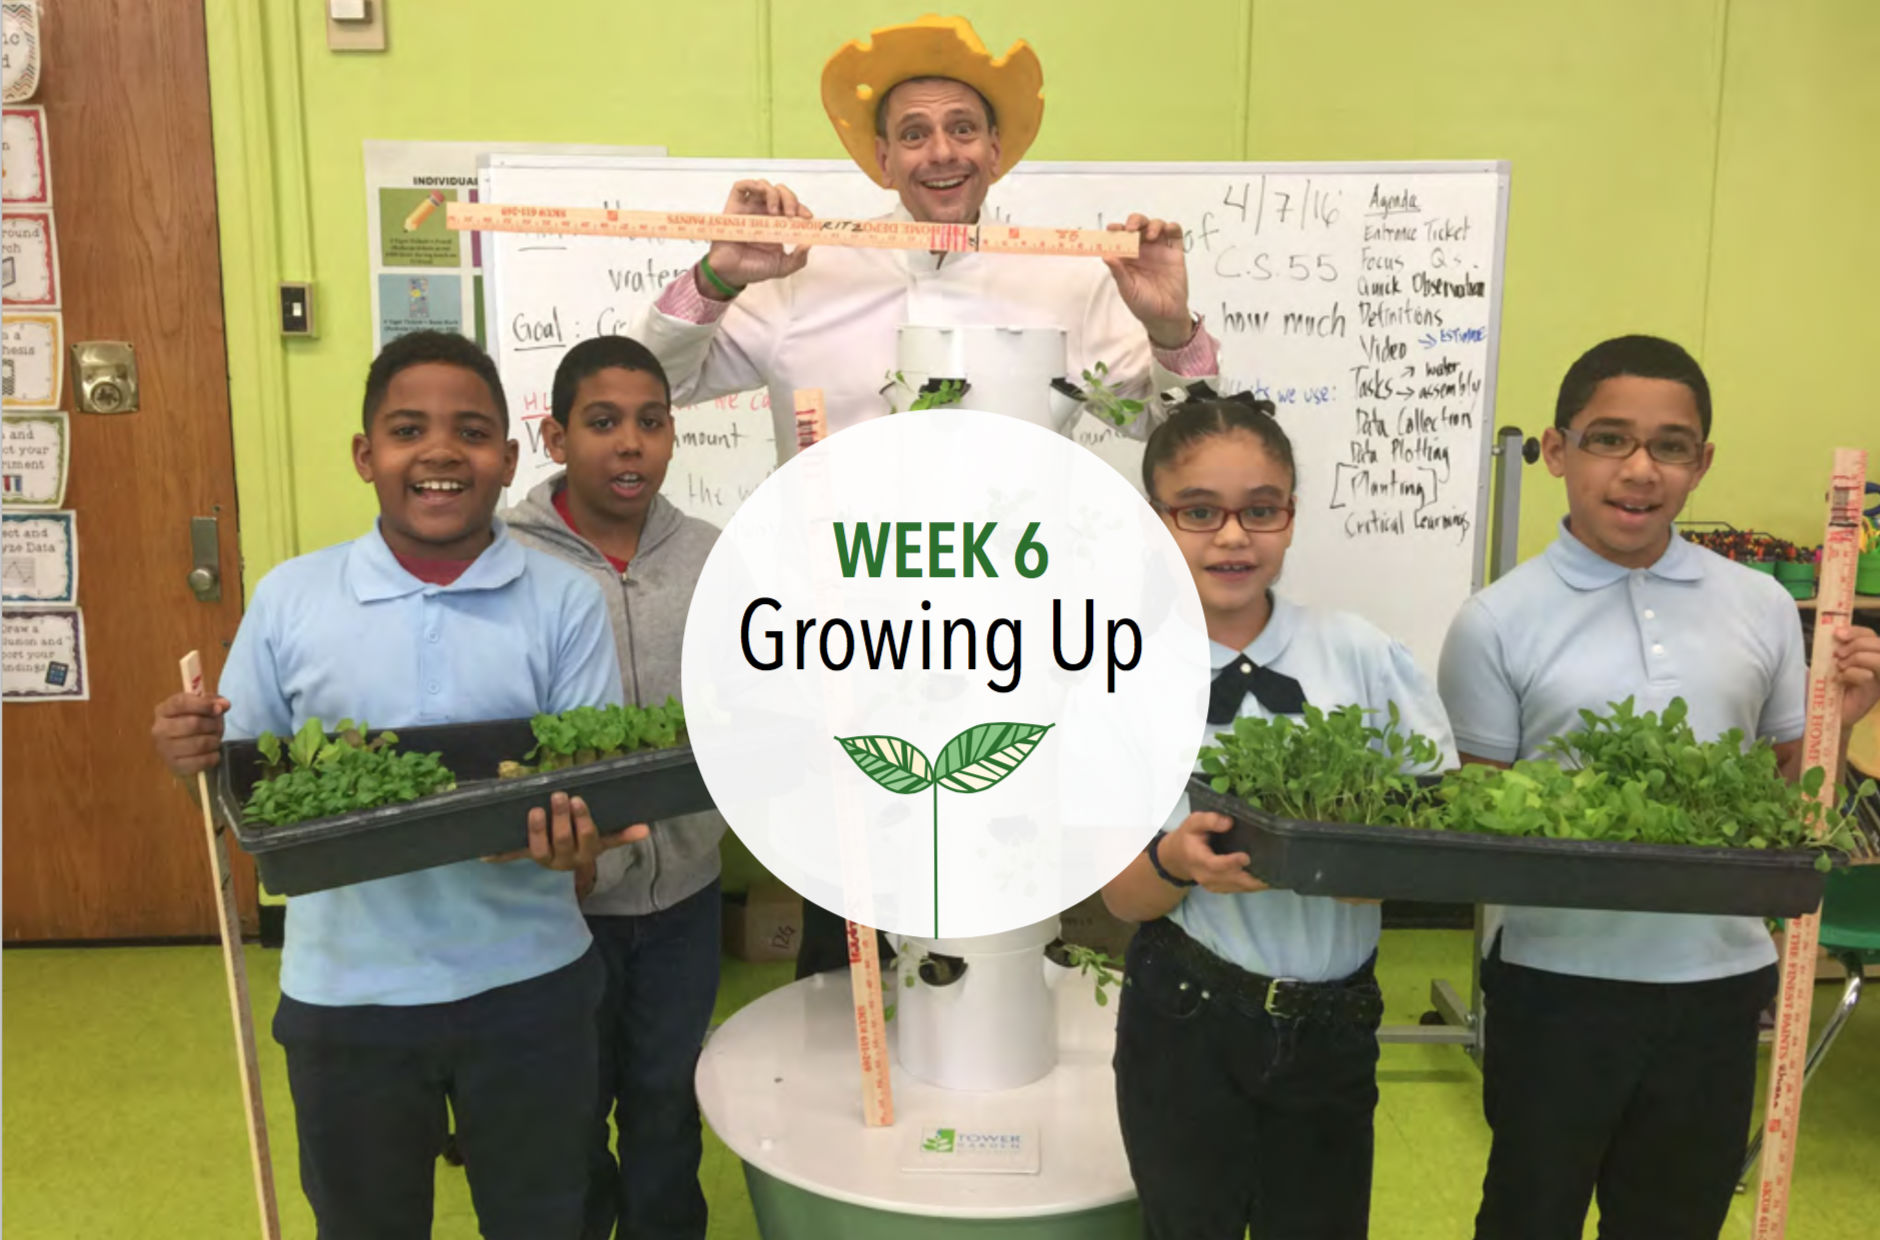 Week 6: Growing Up